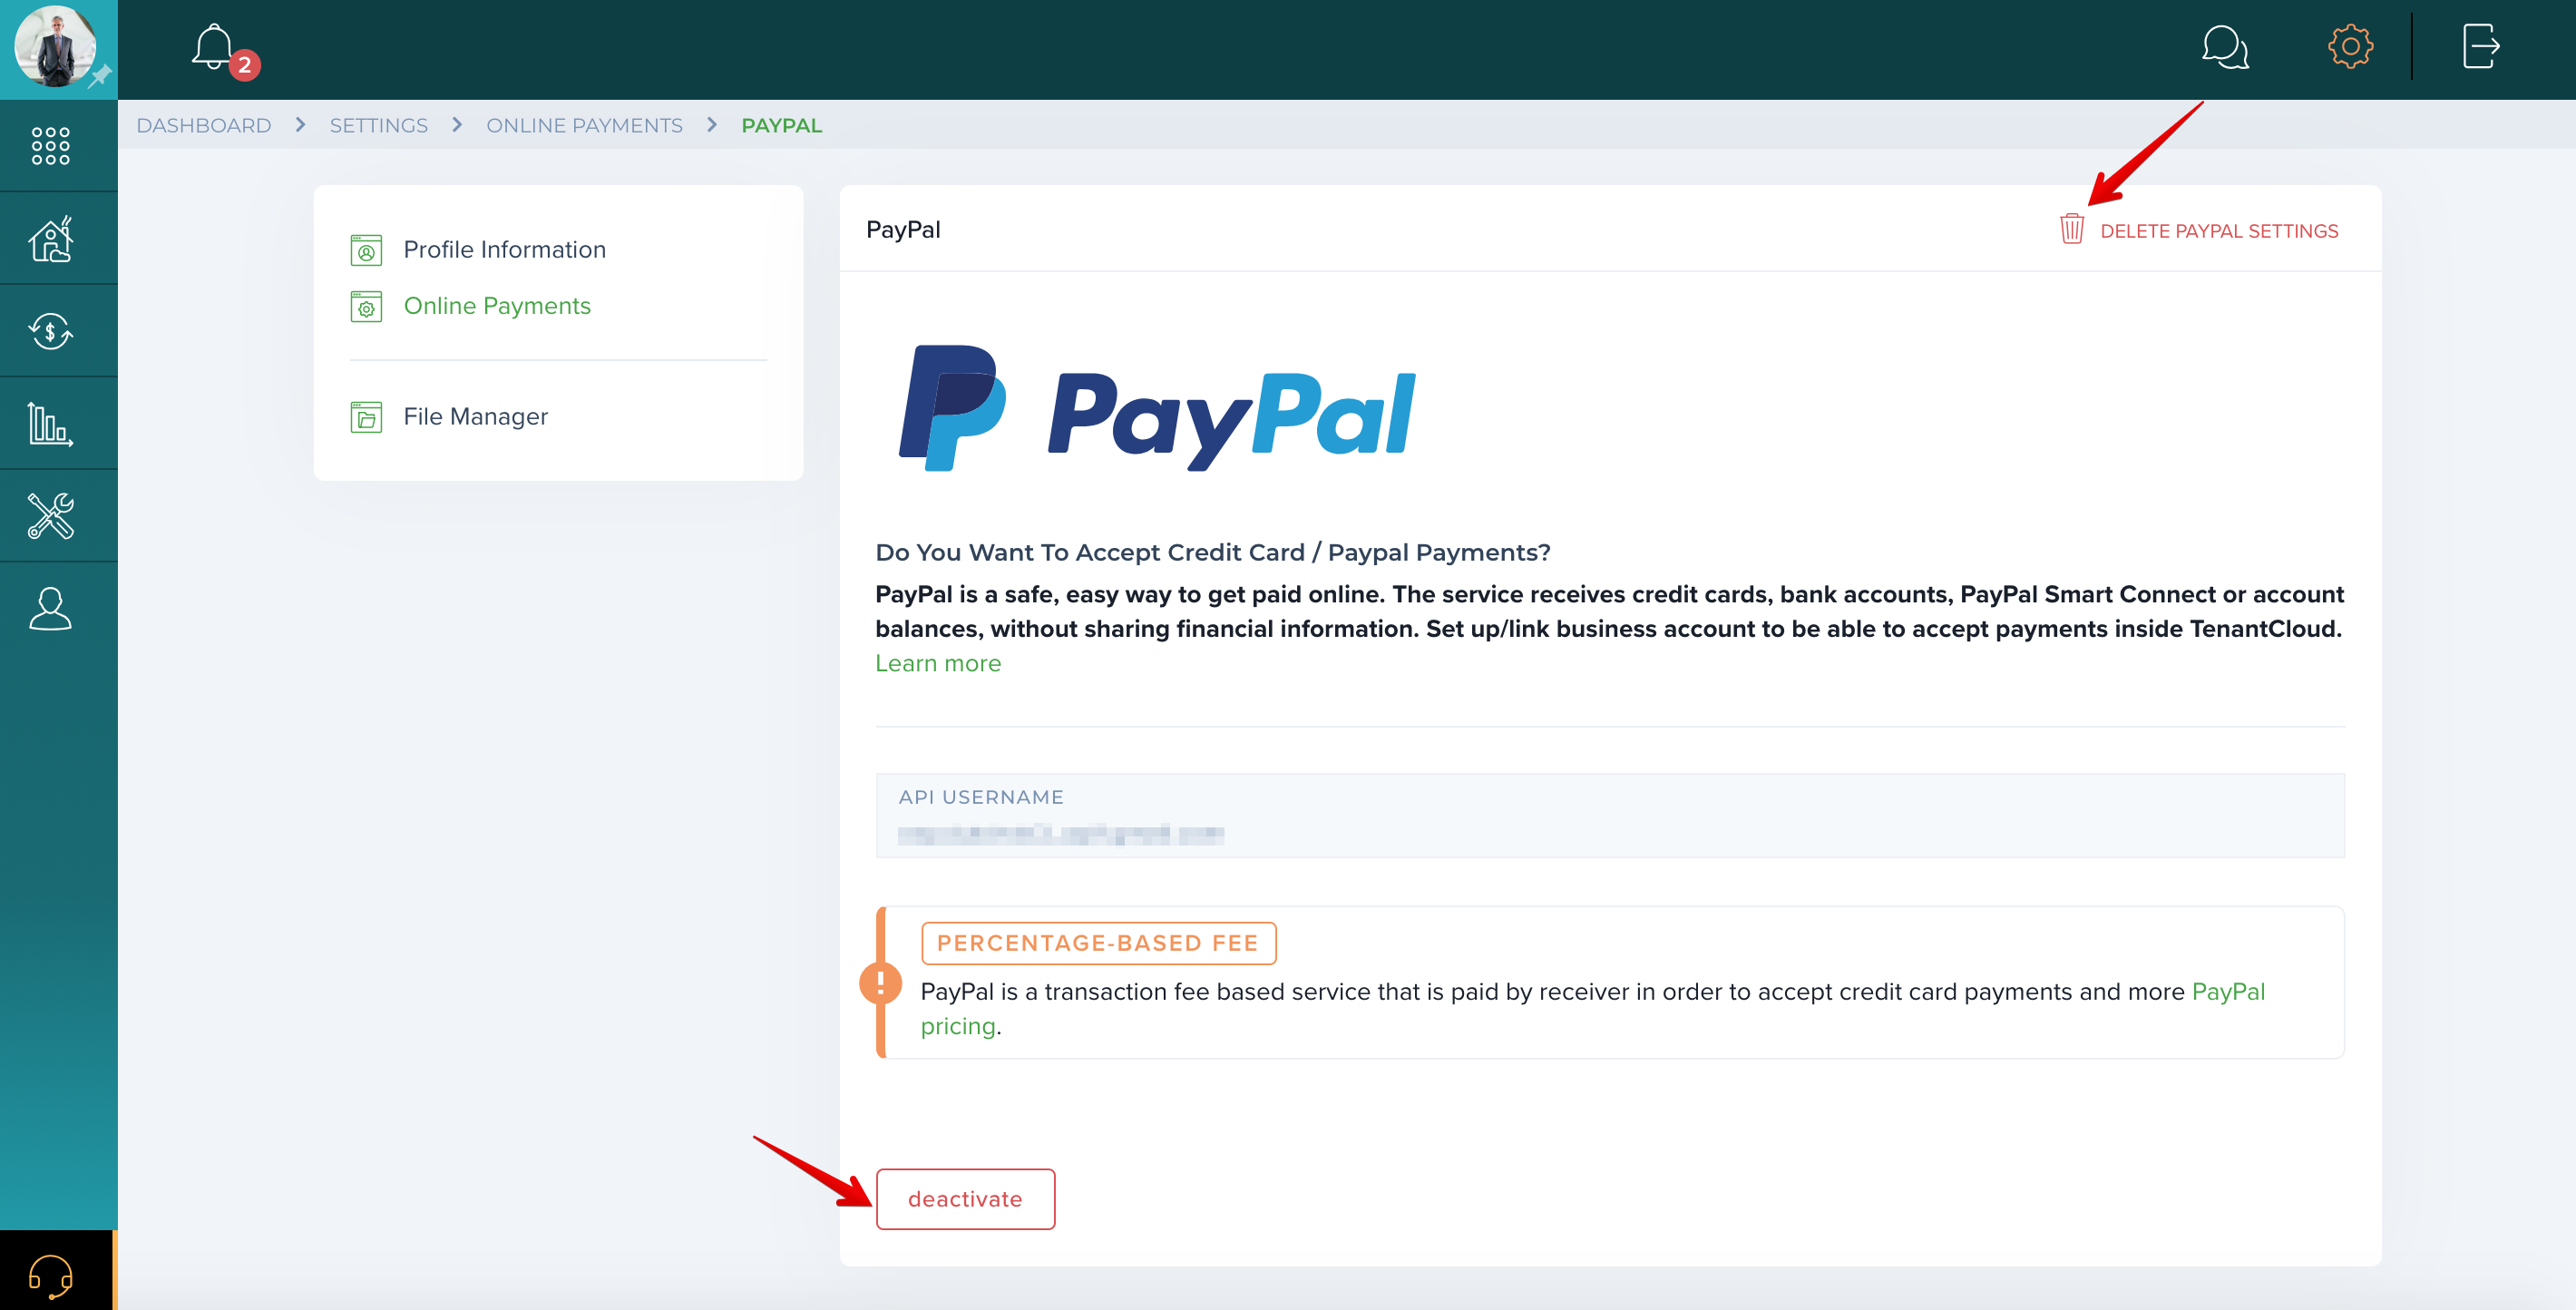 How do I deactivate my PayPal account?